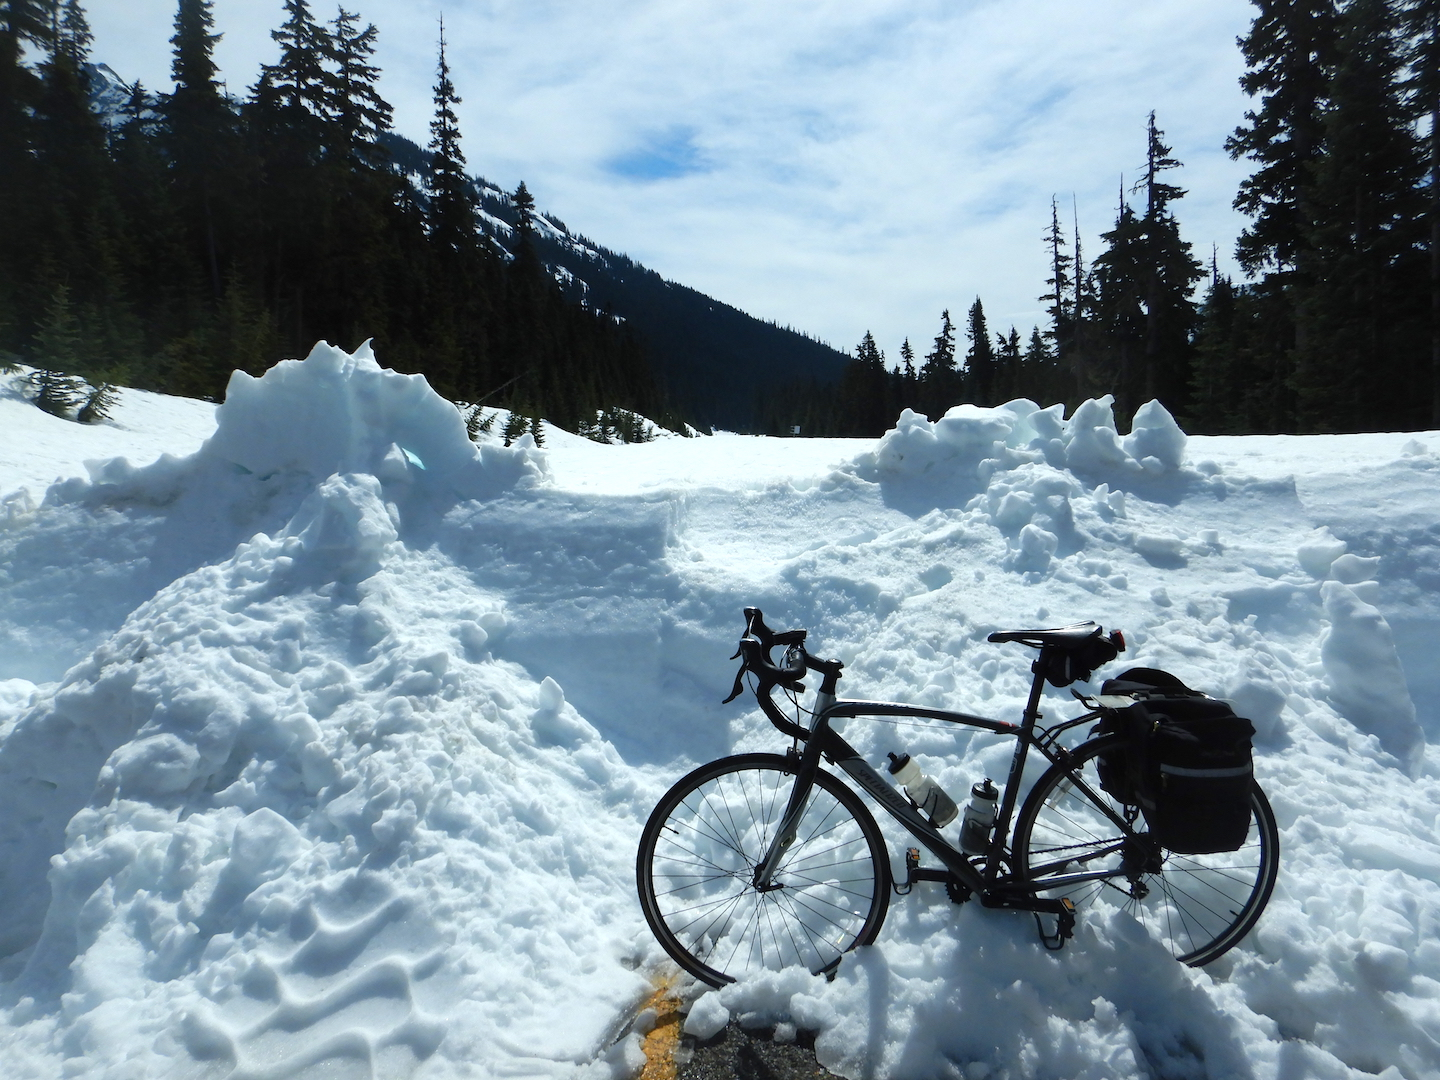 bicycle leaning on five-foot high snow bank